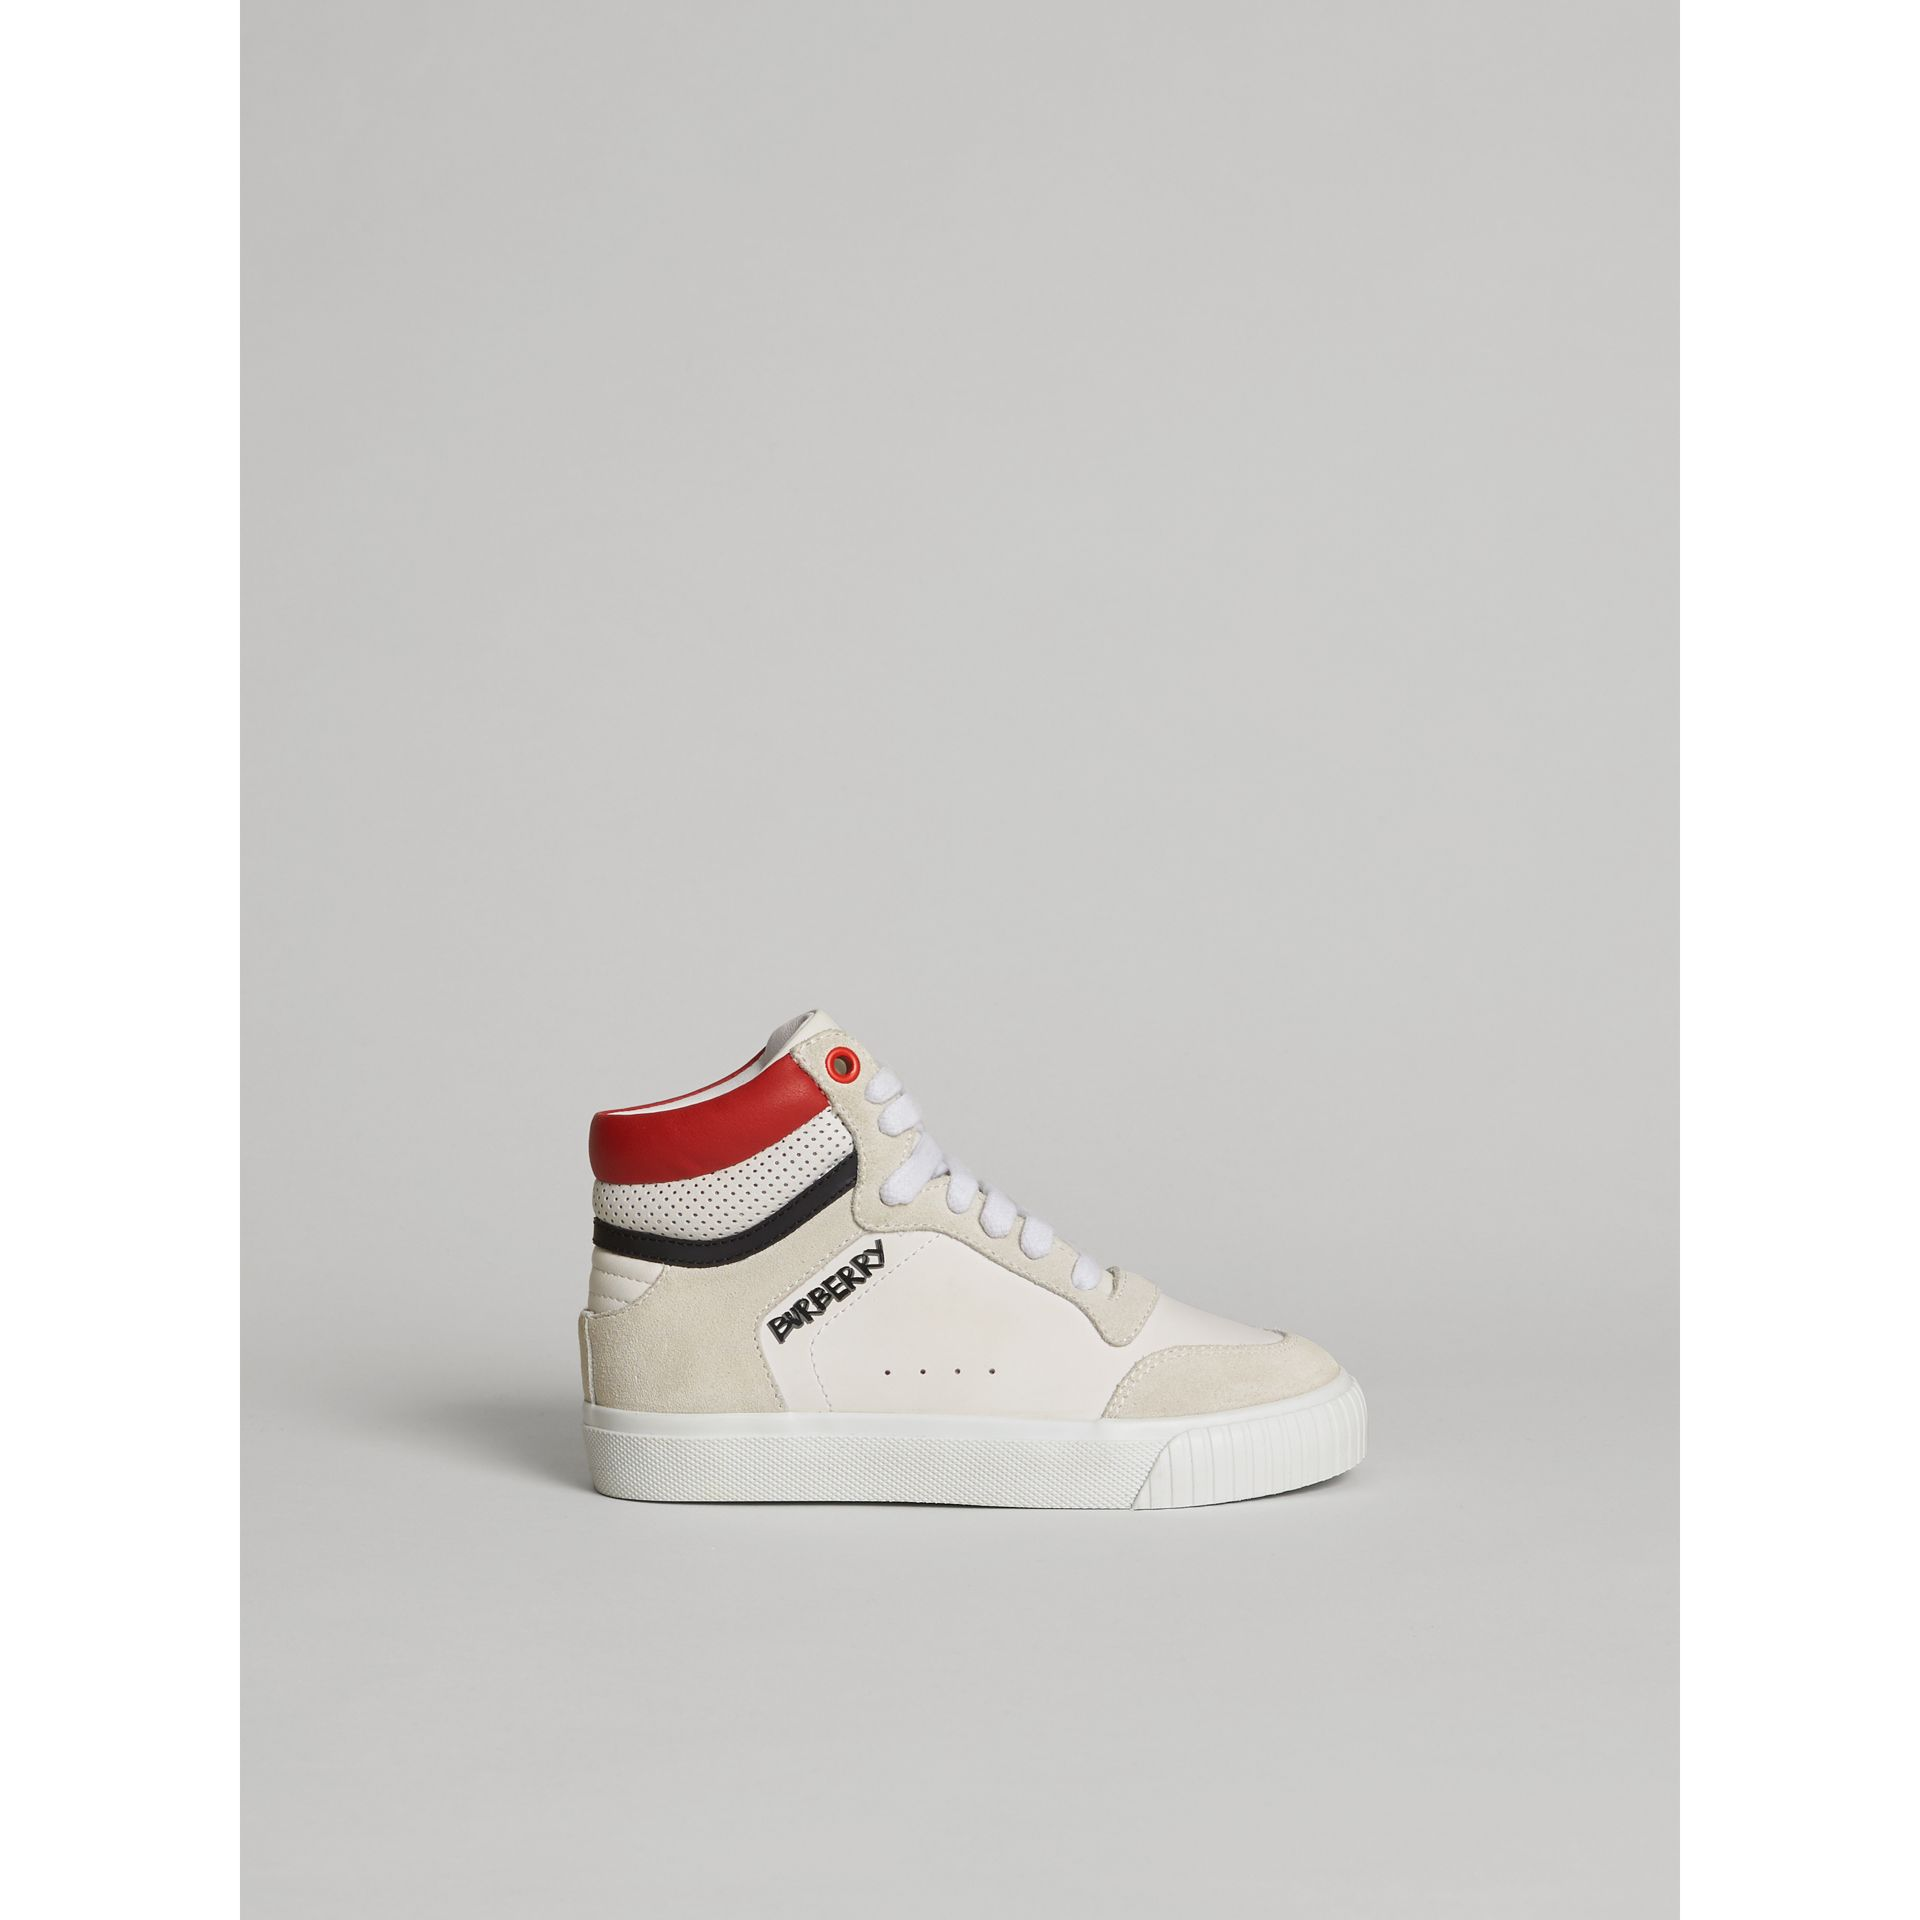 Sneakers montantes en cuir et cuir velours (Blanc Optique) | Burberry - photo de la galerie 4